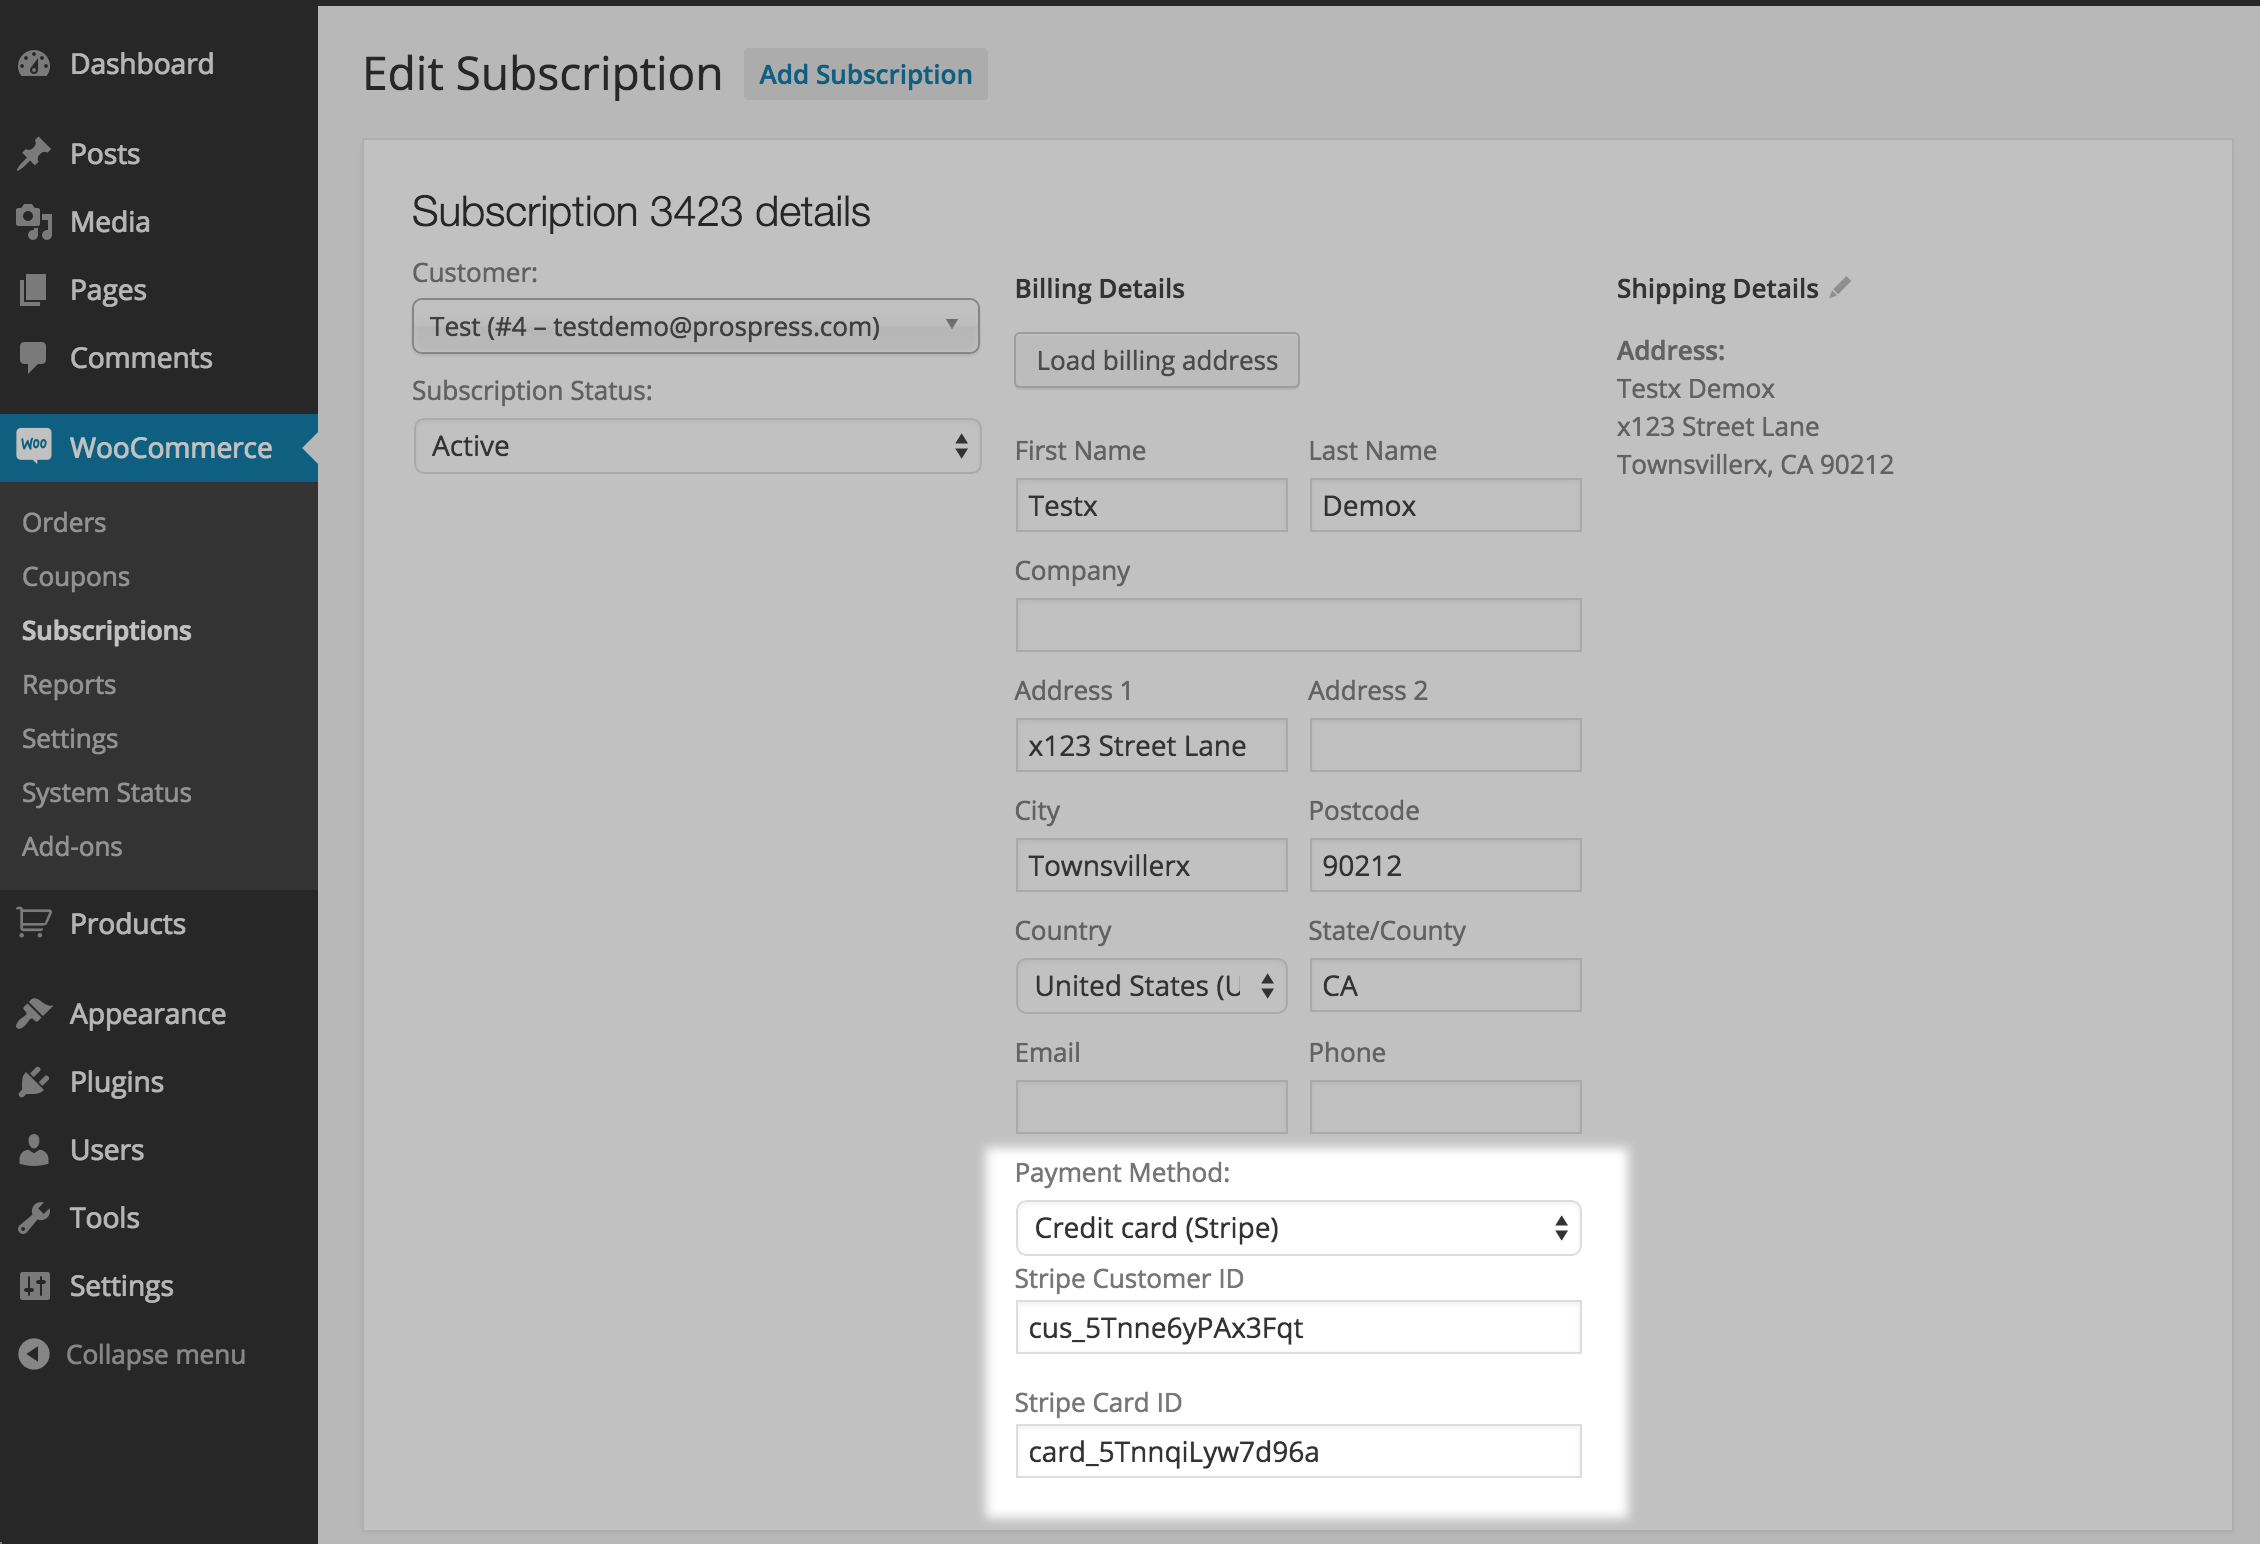 Set Recurring Payment Method on Subscription